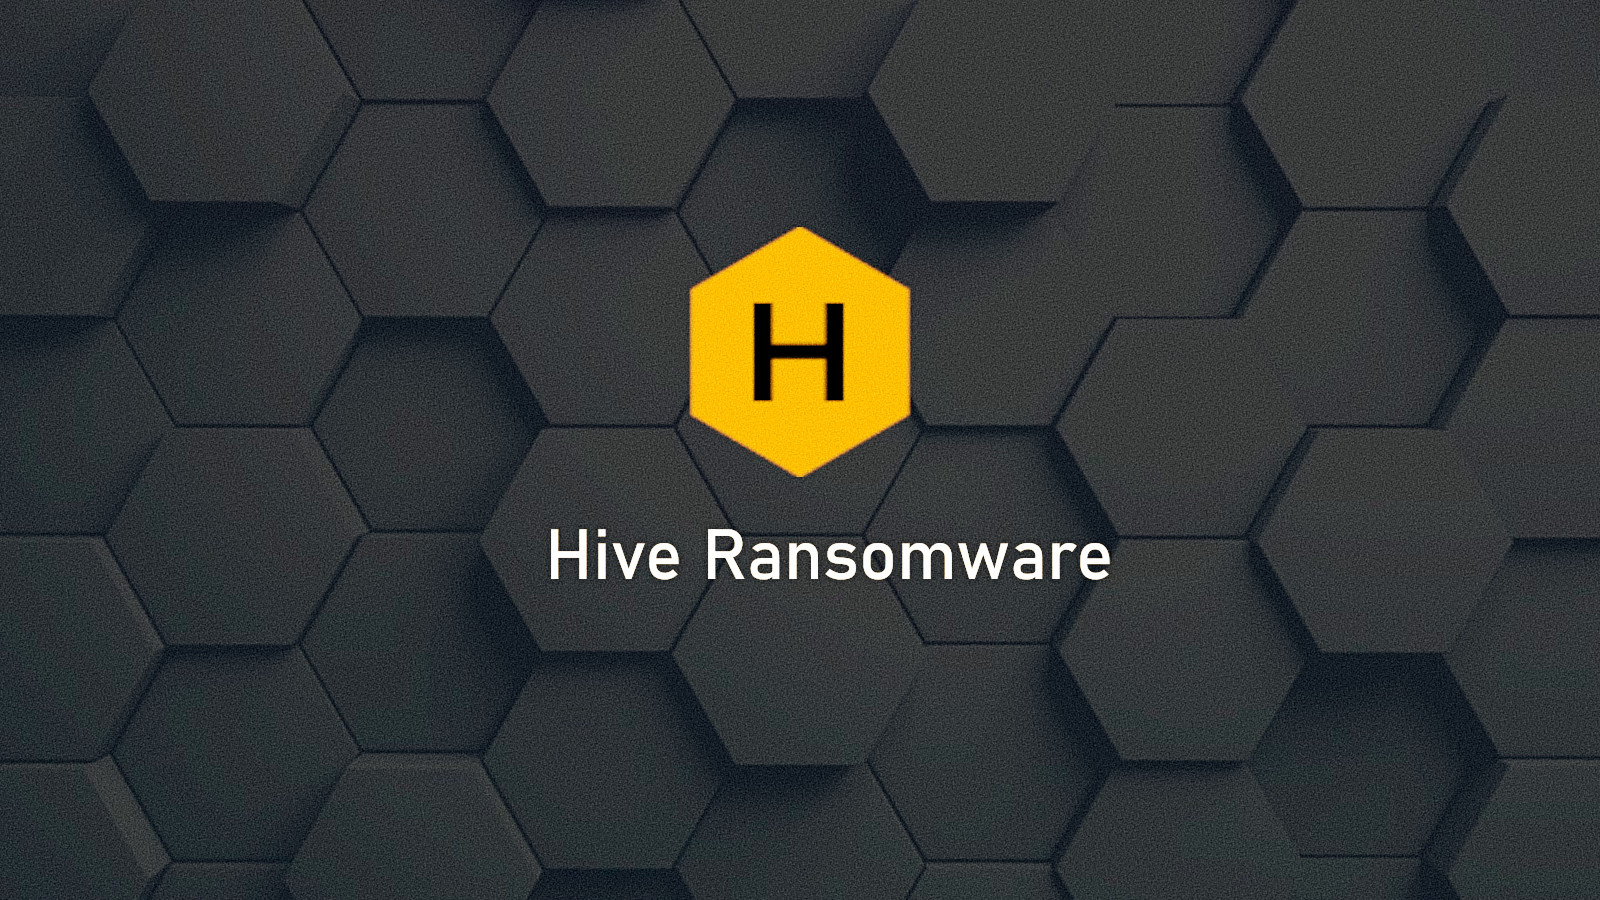 FBI shares technical details for Hive ransomware